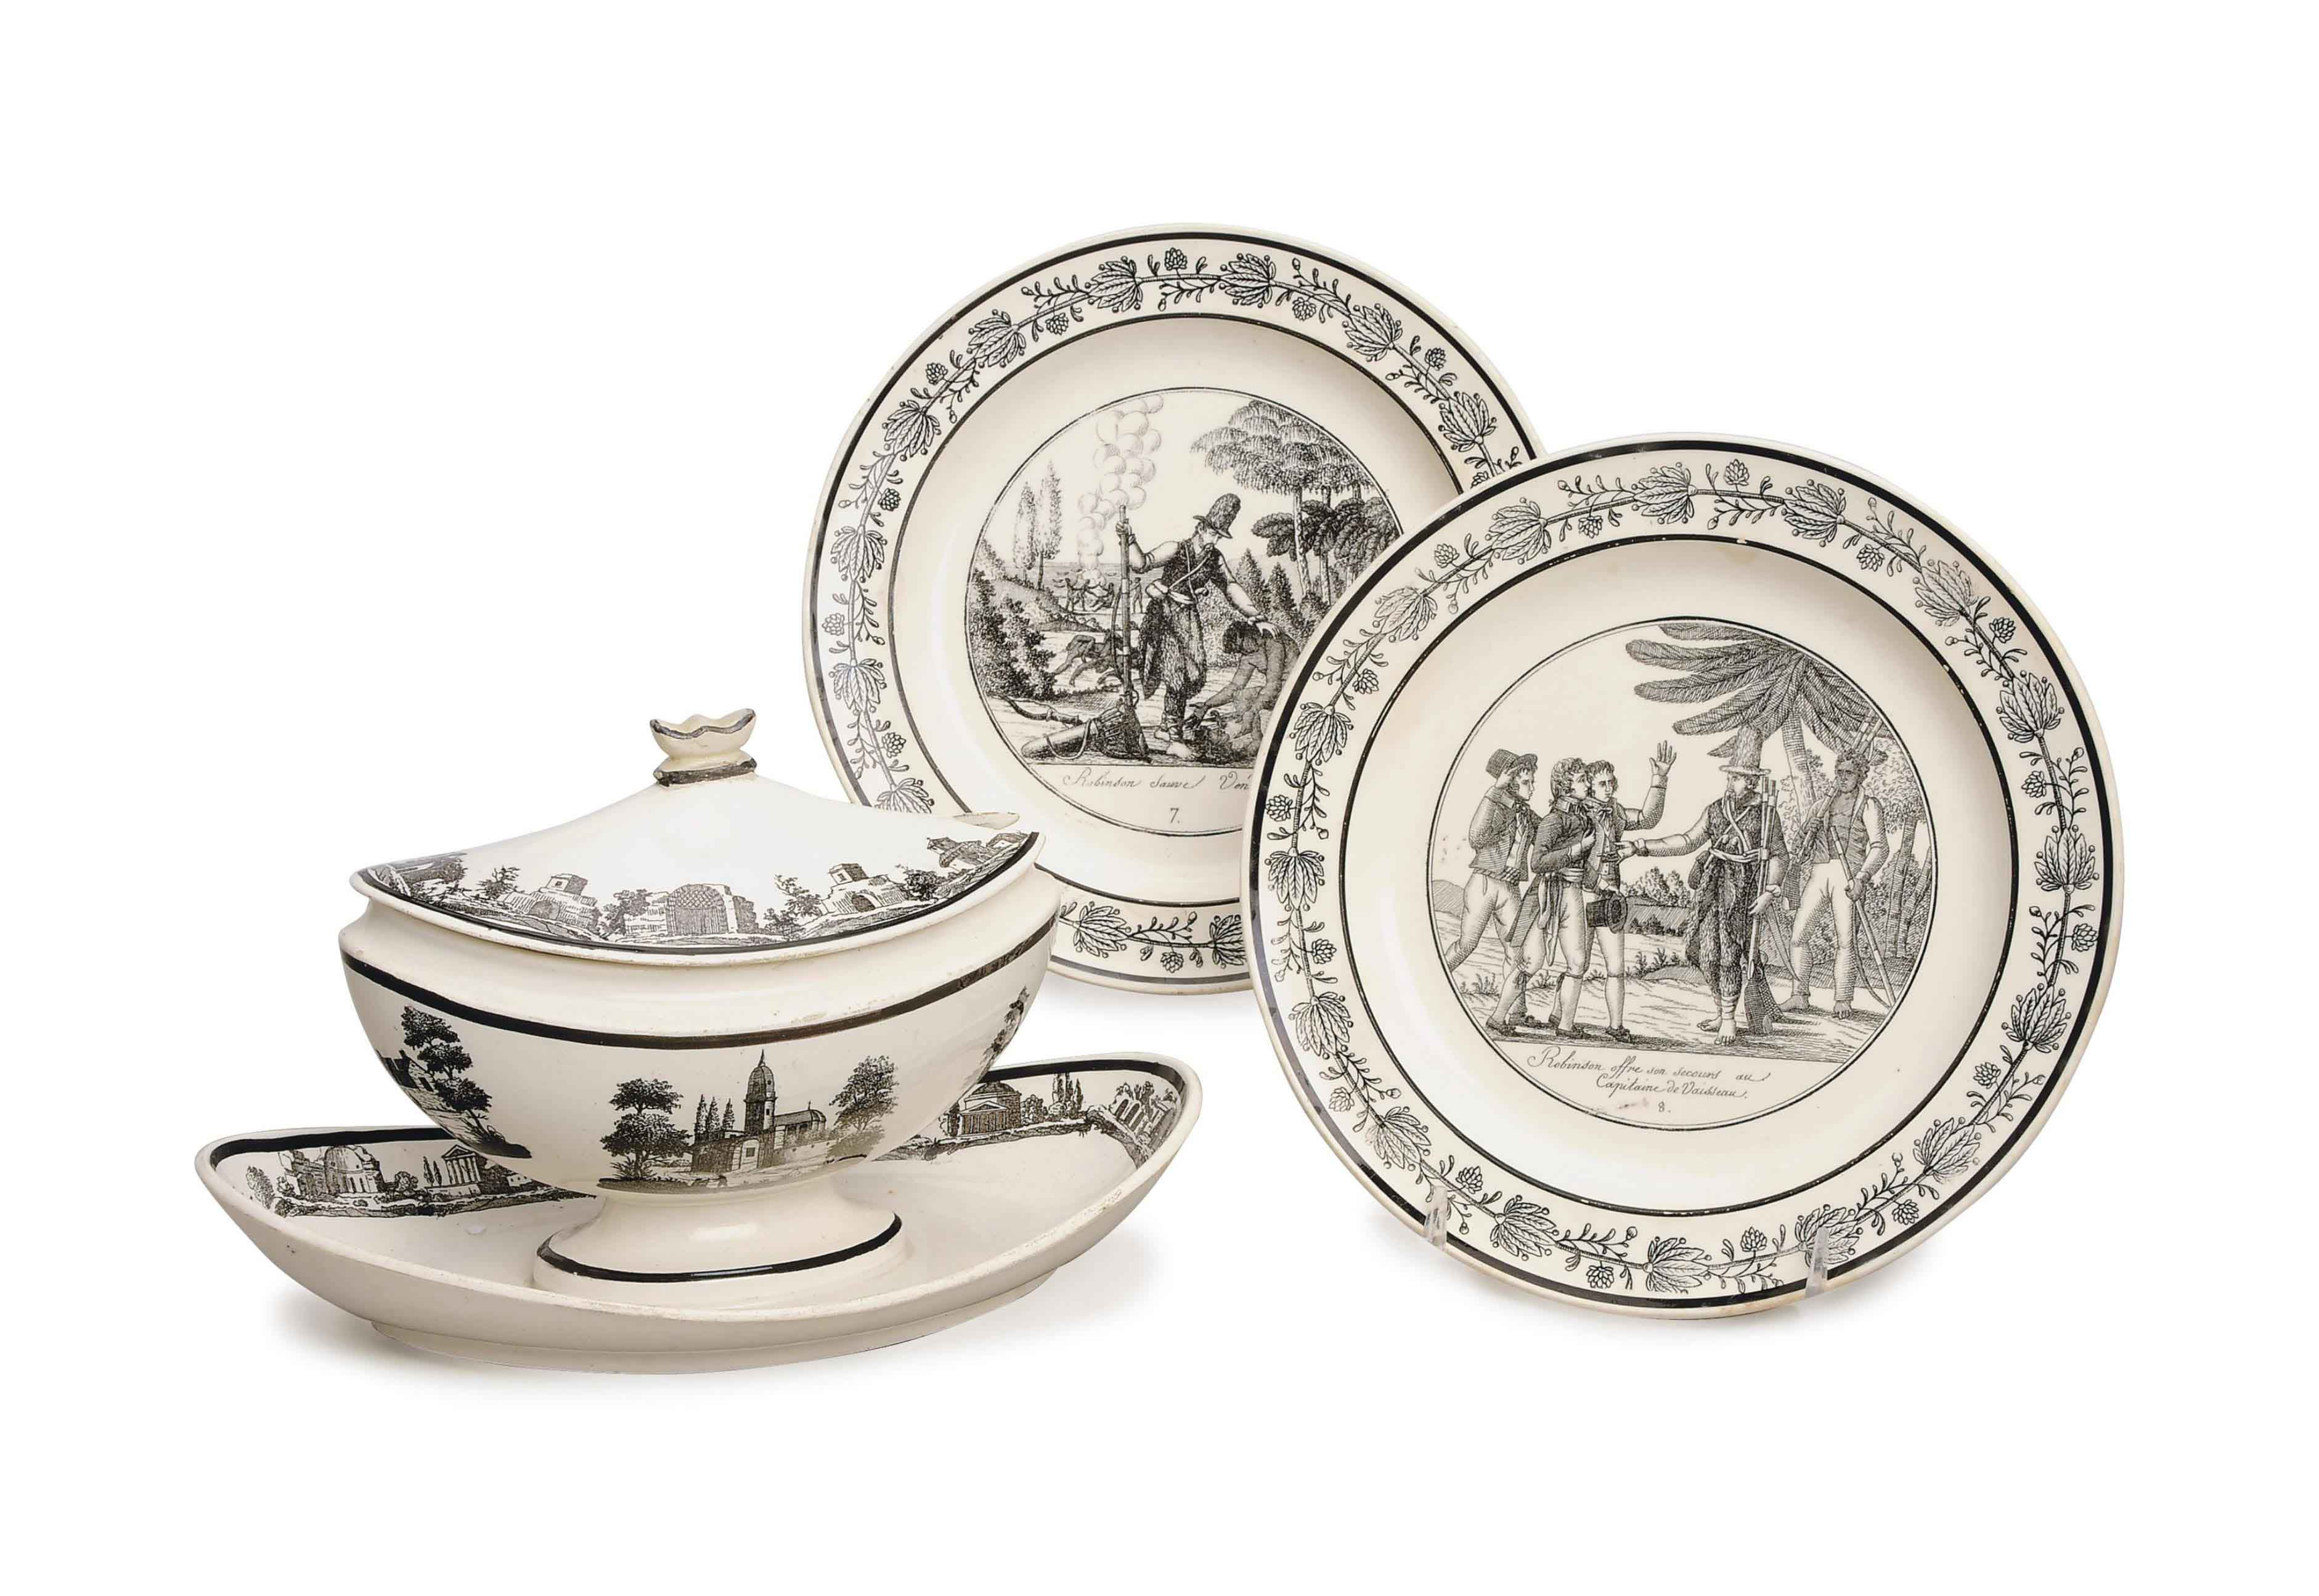 AN ASSEMBLED FRENCH CREAMWARE TRANSFER-PRINTED PART DESSERT SERVICE.